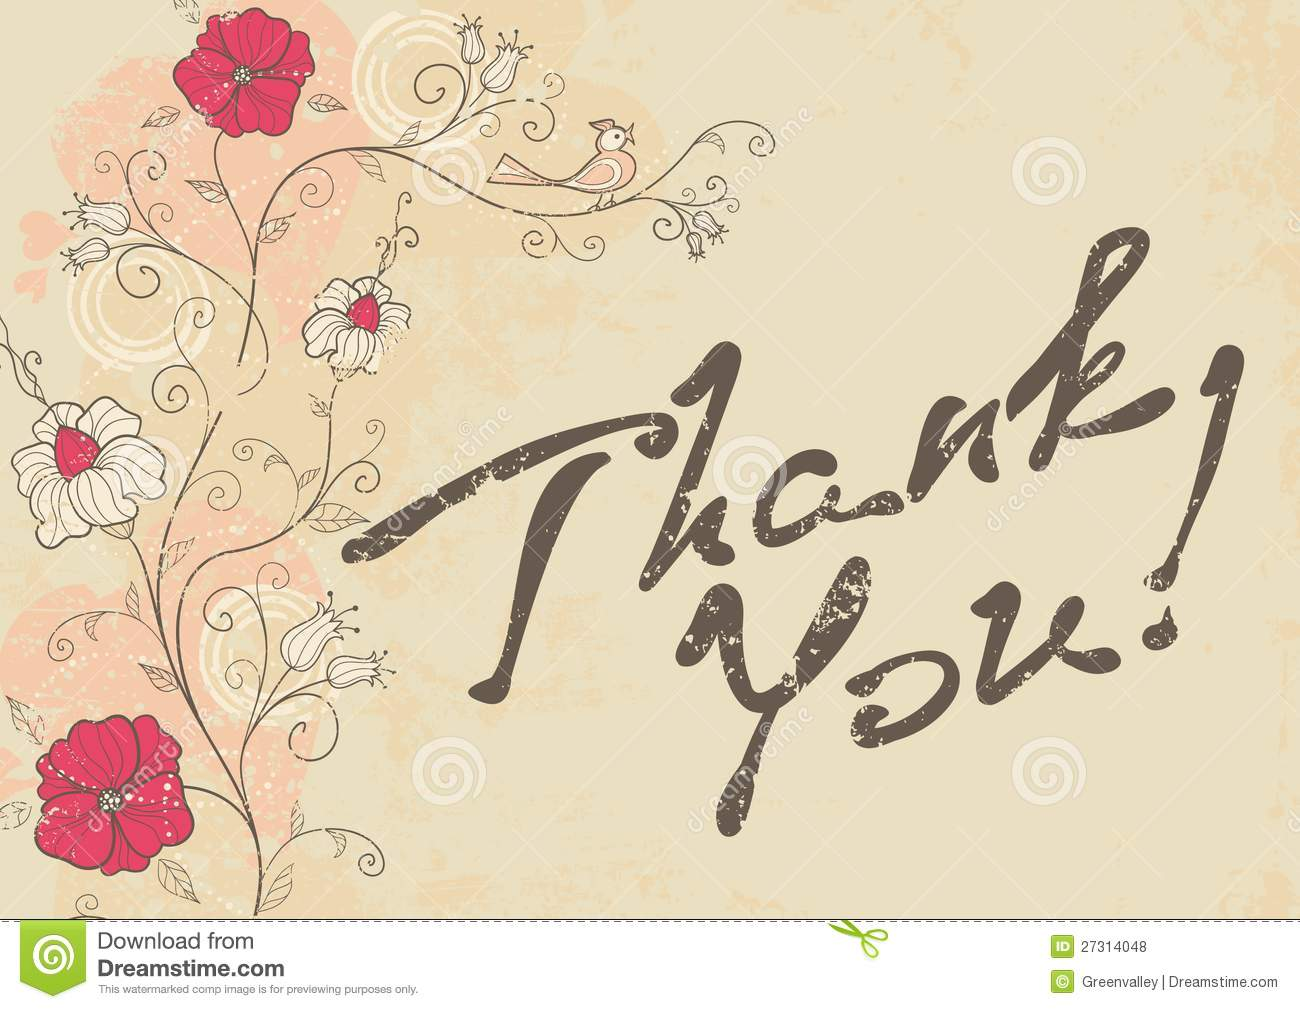 royaltyfree stock photo download thank you card